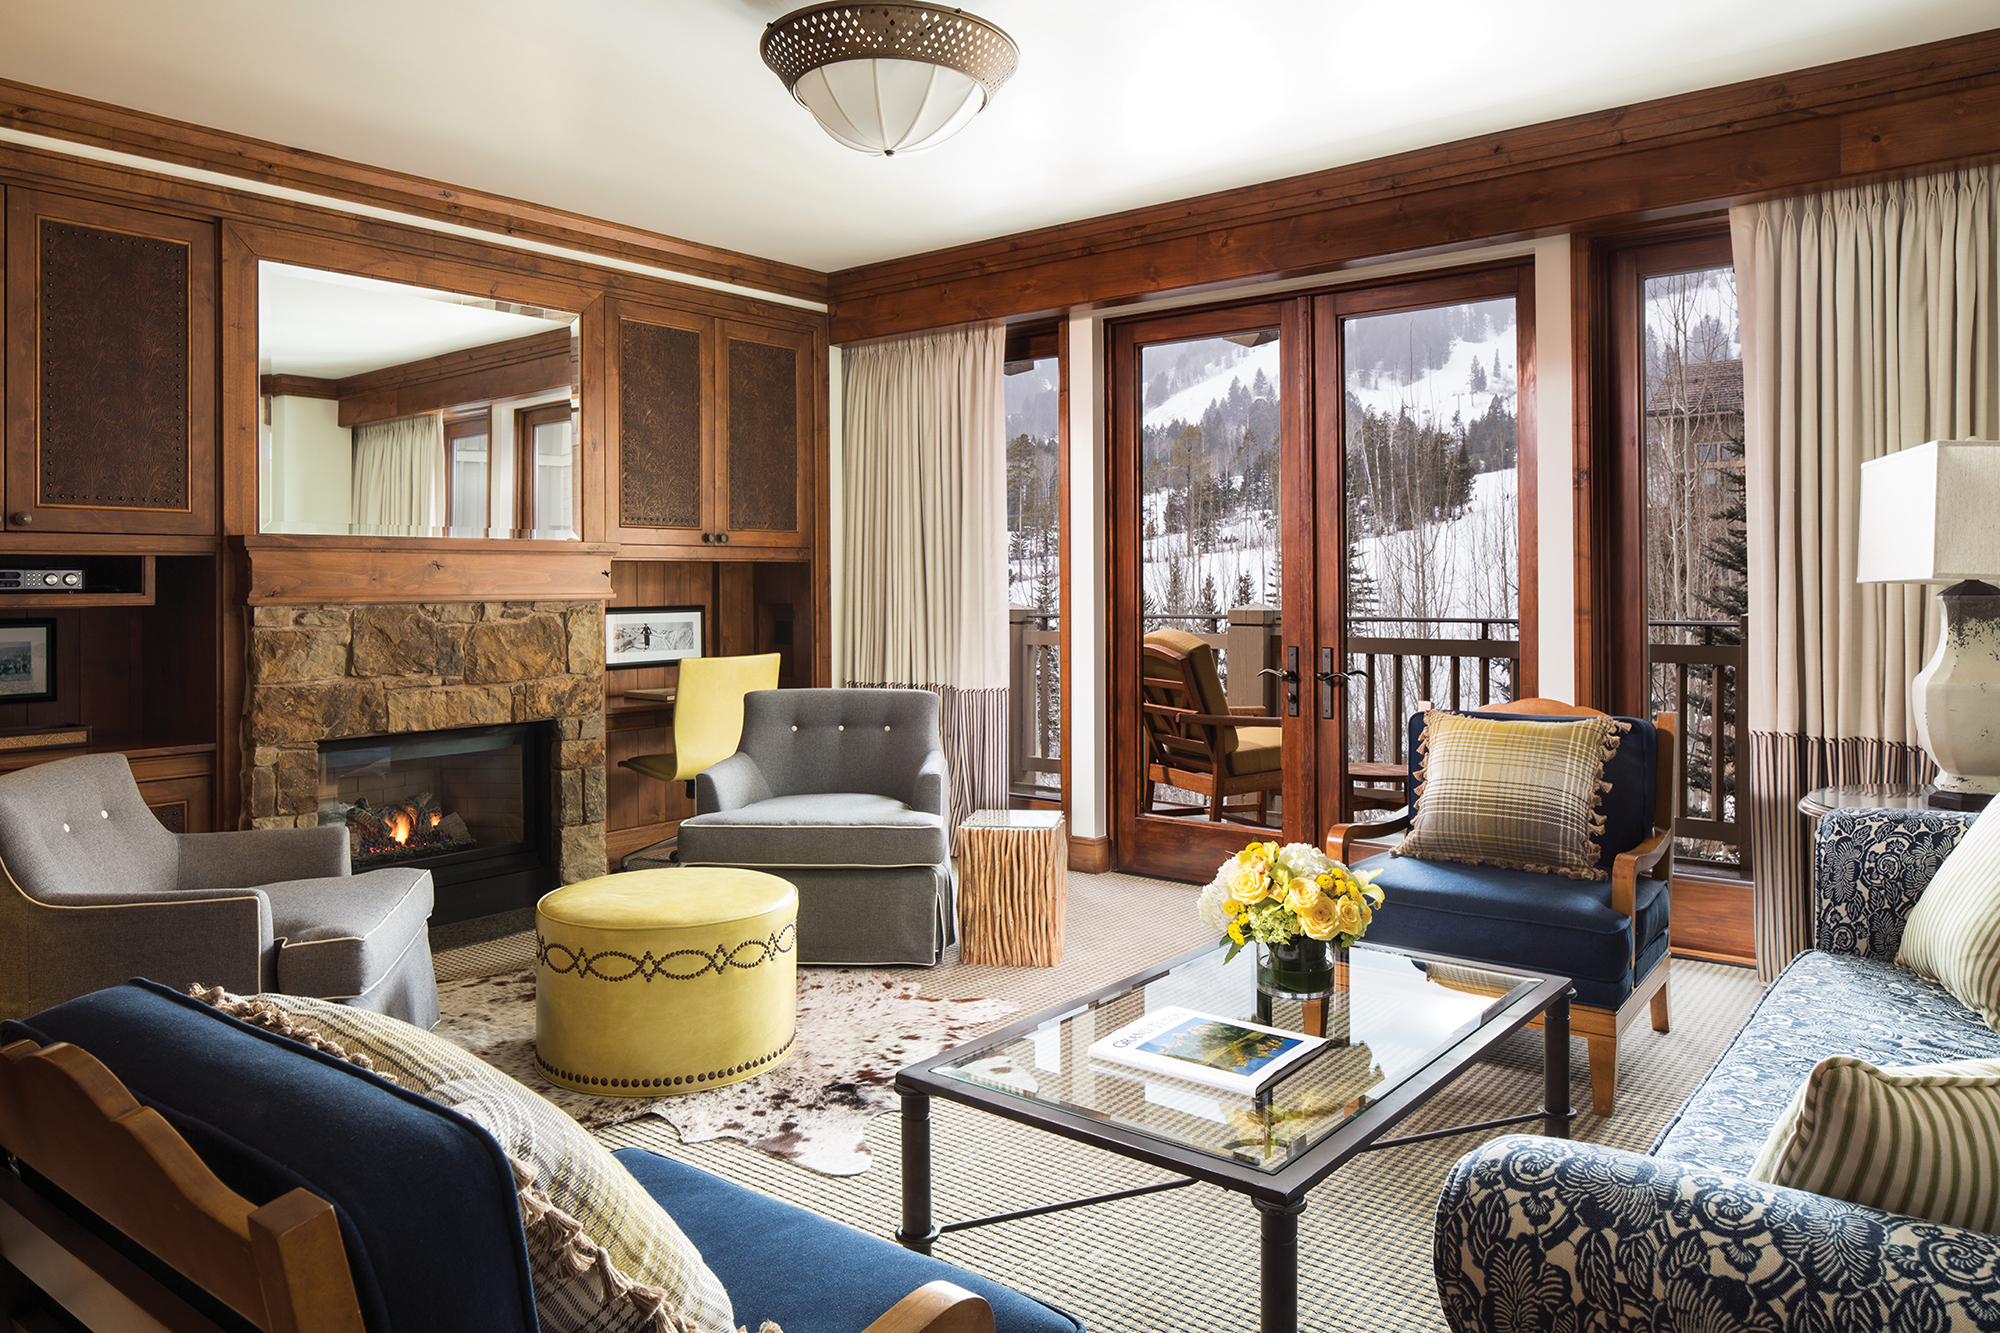 Propriedade Fraccionada para Venda às First class ownership Four Seasons 7680 Granite Loop Road #651 Teton Village, Wyoming 83025 Estados Unidos